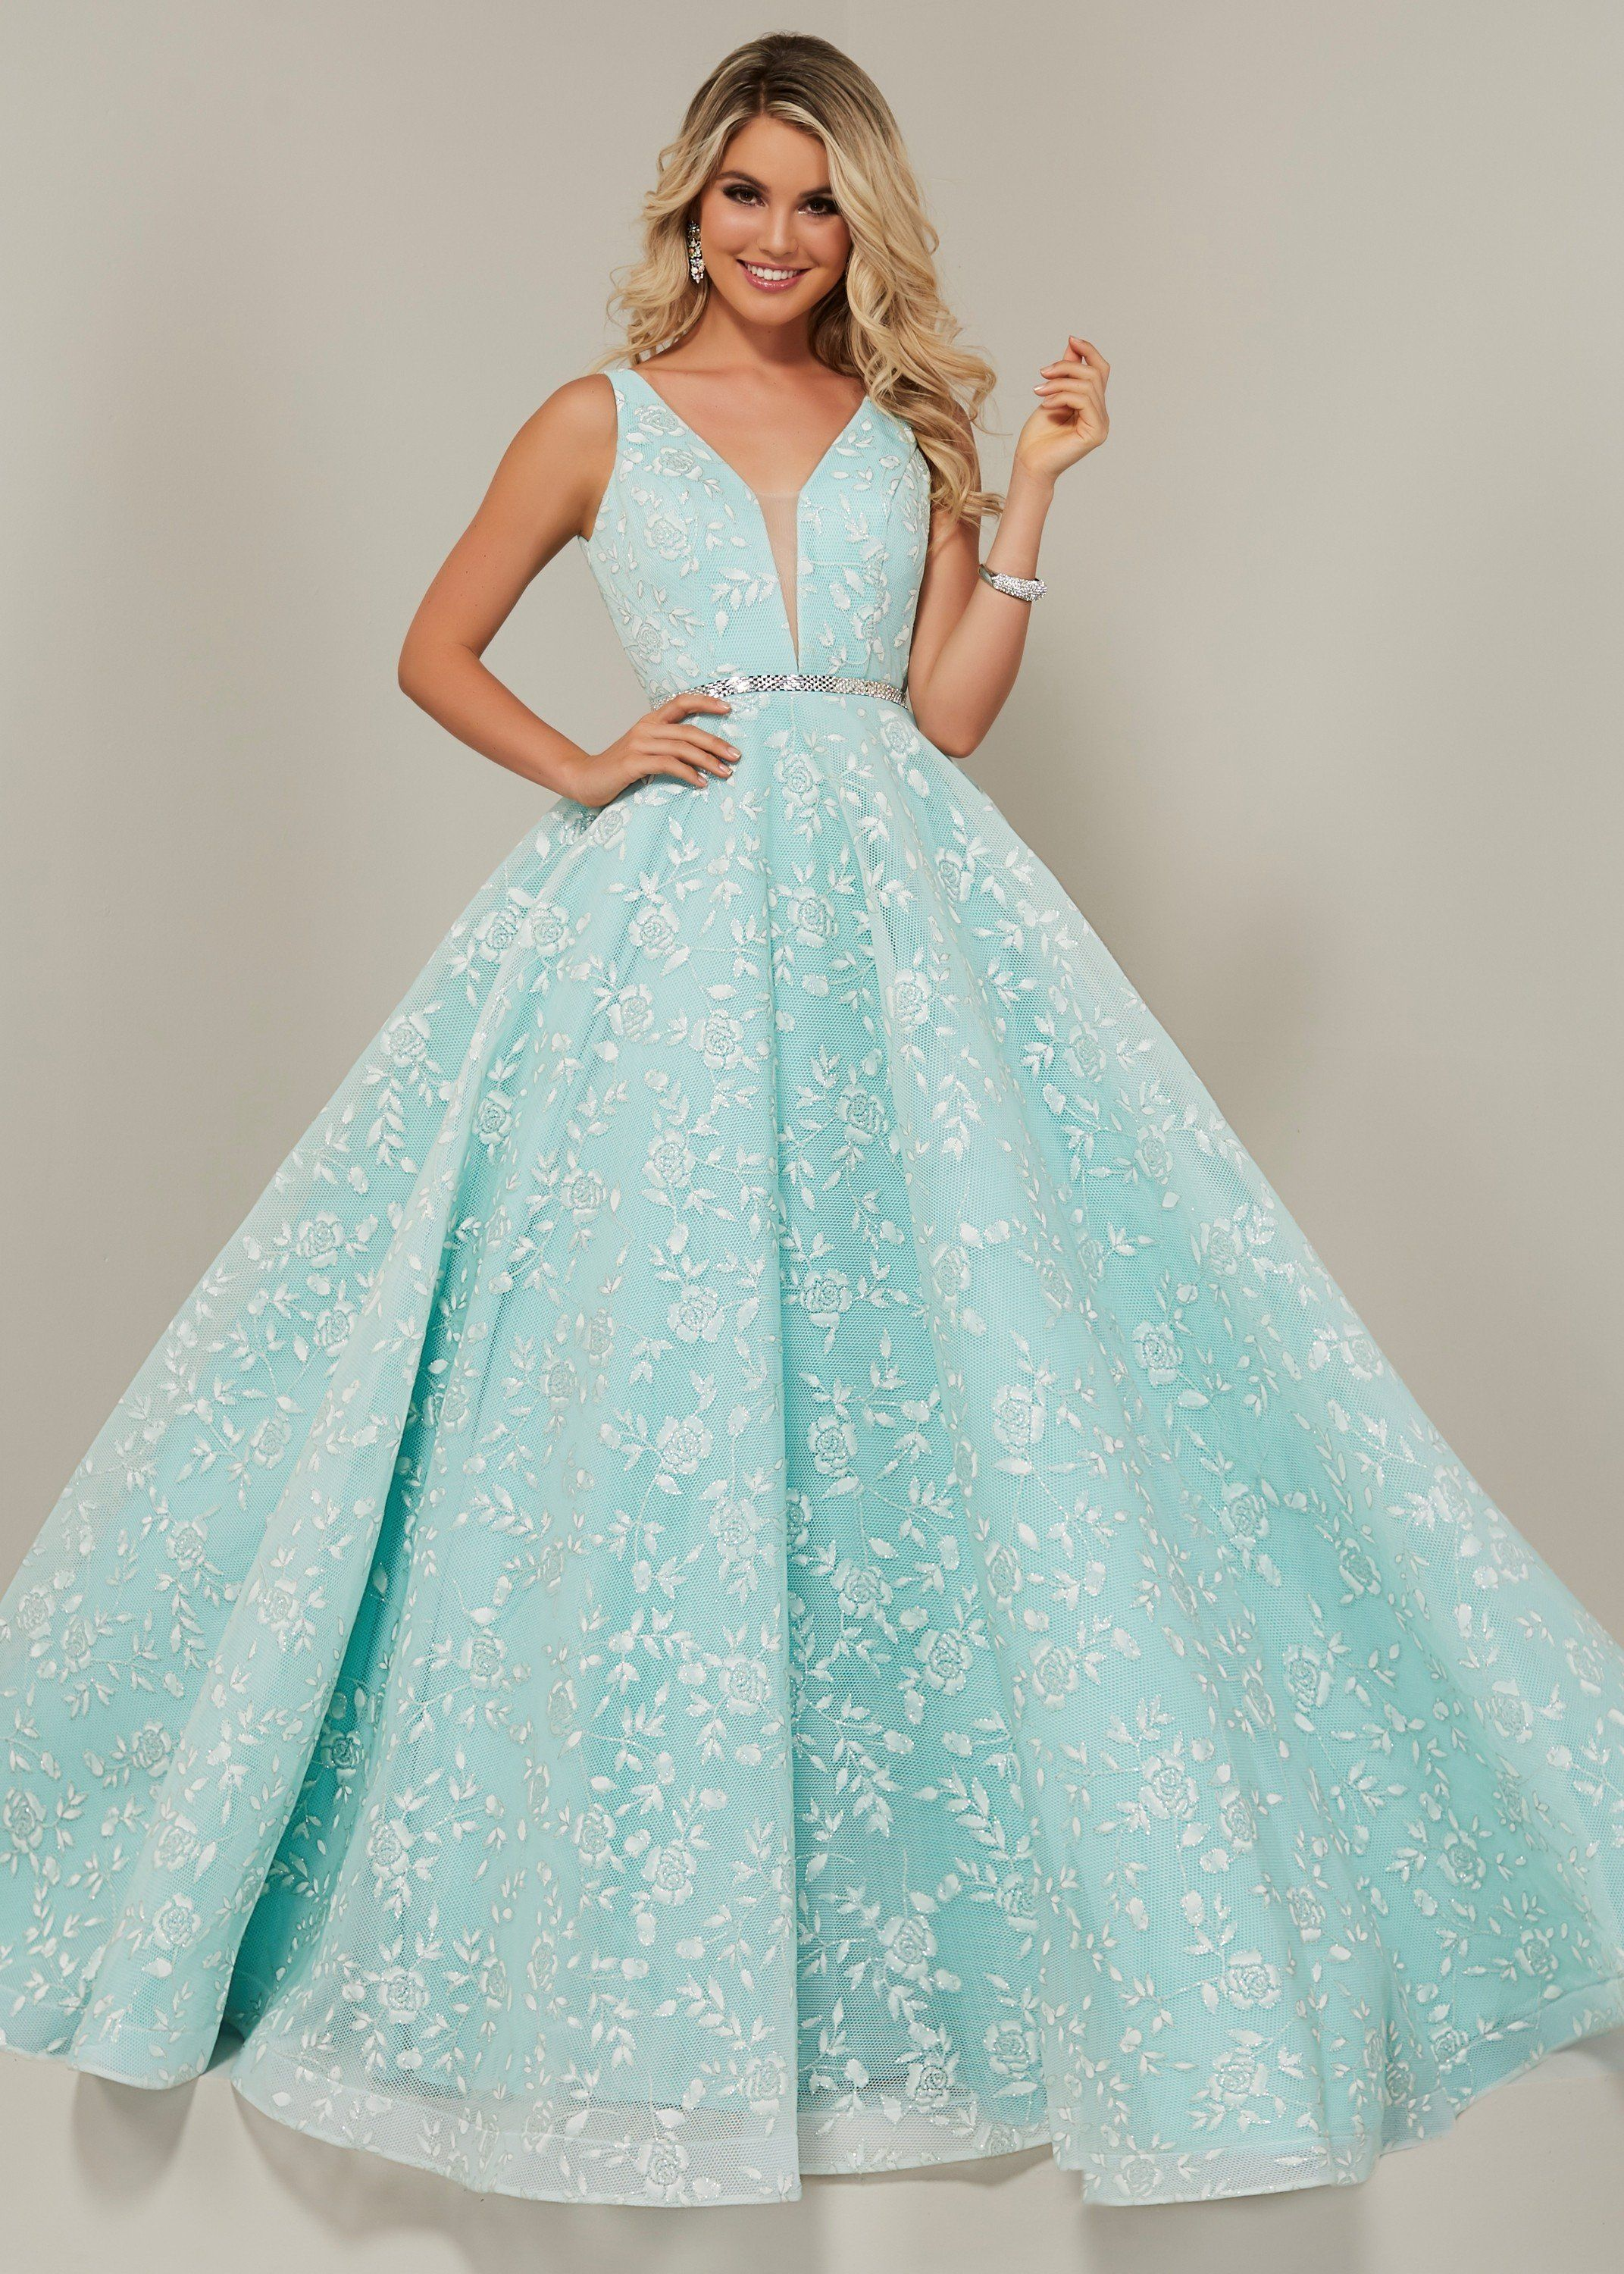 c3c1baf2680 Tiffany Designs 16325 Plunge Neck Floral Ball Gown in 2019